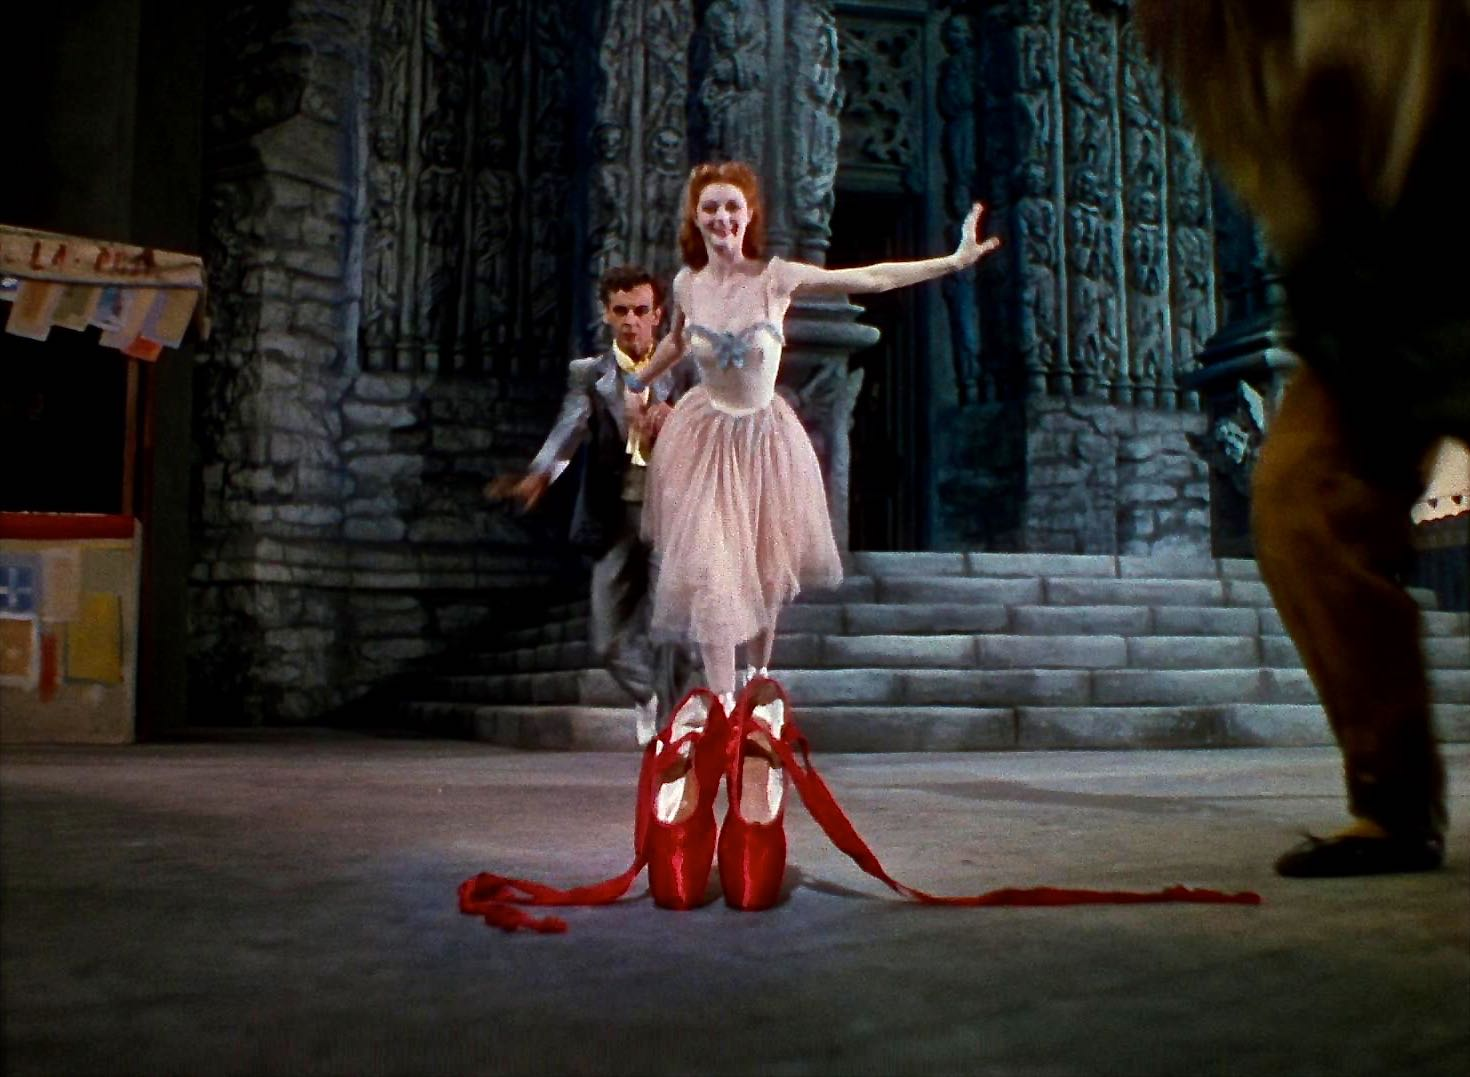 96. The Red Shoes (1948)